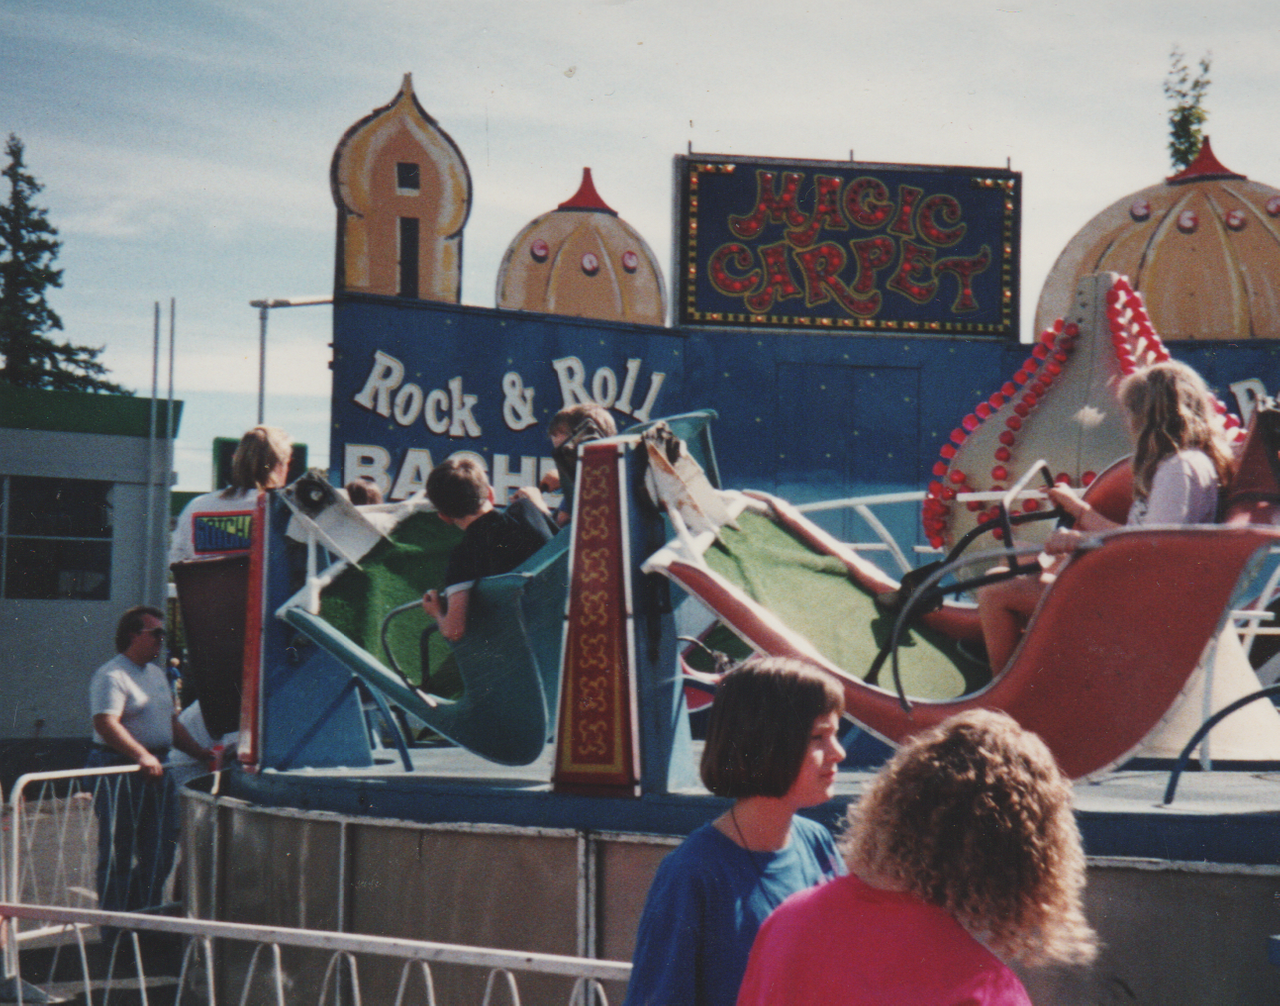 1992-09 - Fair in Forest Grove, parade, rides, Katie, Rick, Joey, Crystal, by Marilyn-10.png